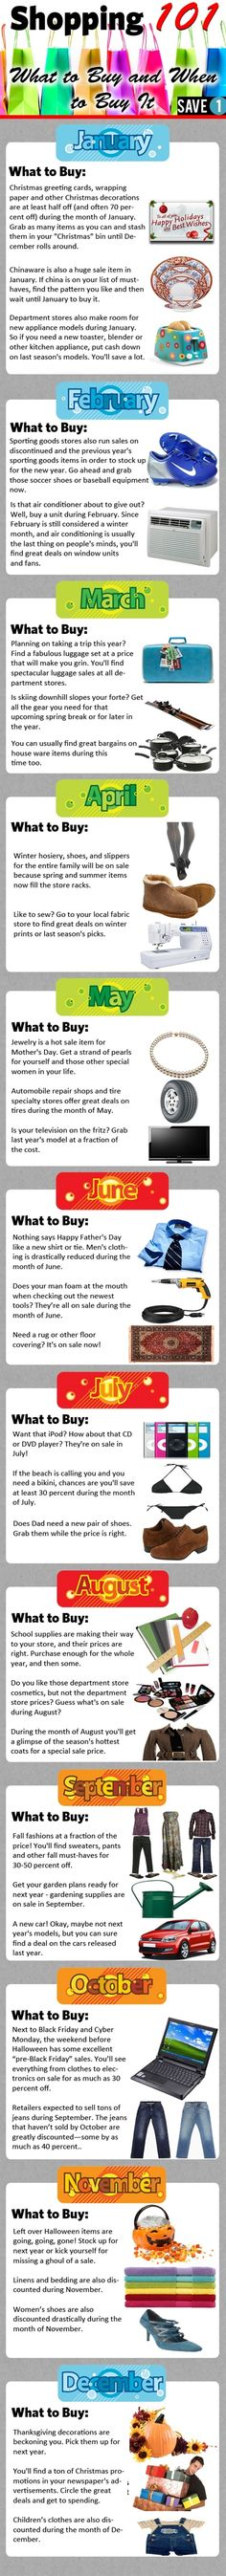 tips on when to get the best bargains during the y